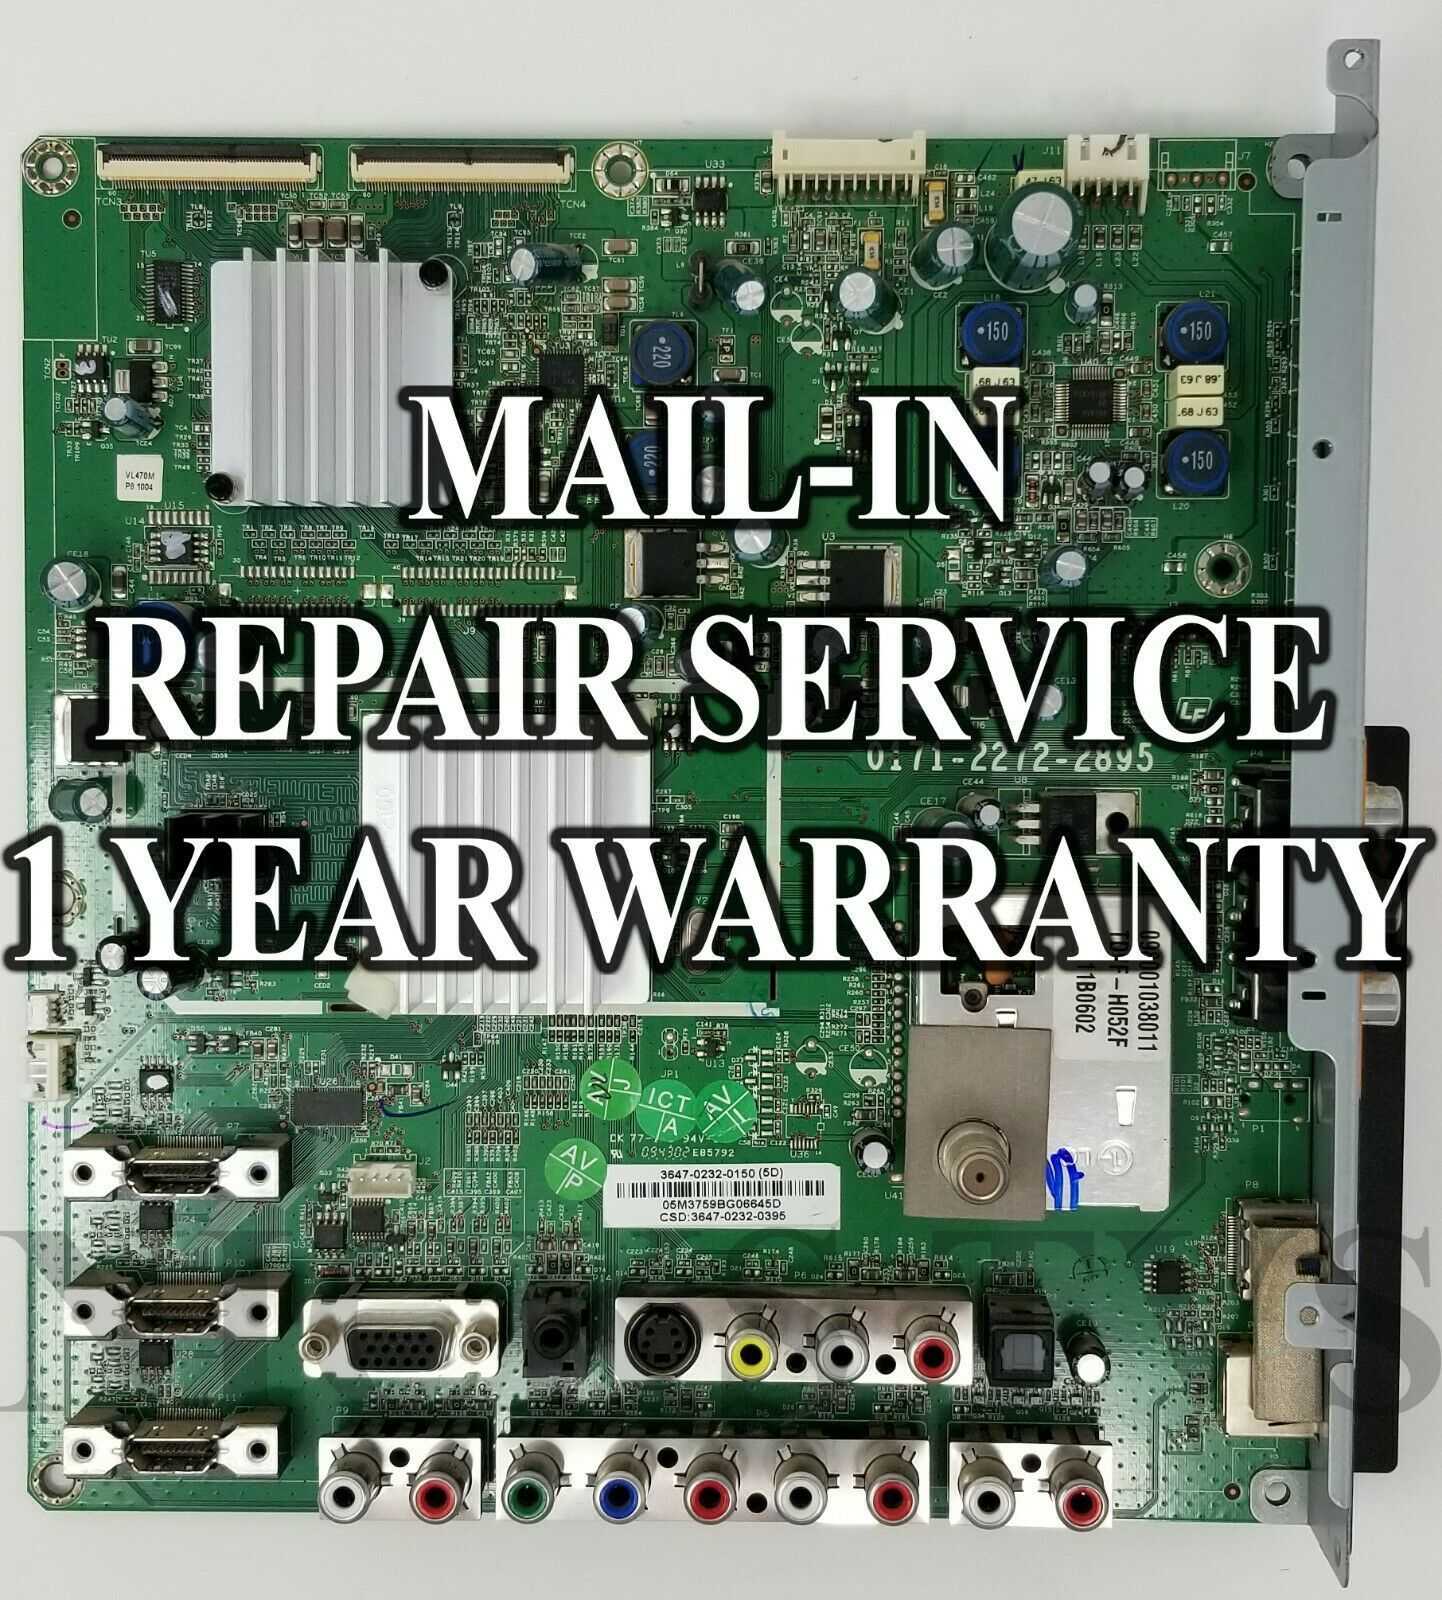 Primary image for Mail-in Repair Service Vizio VL420M Main Board 3642-0682-0150 0171-2272-2895